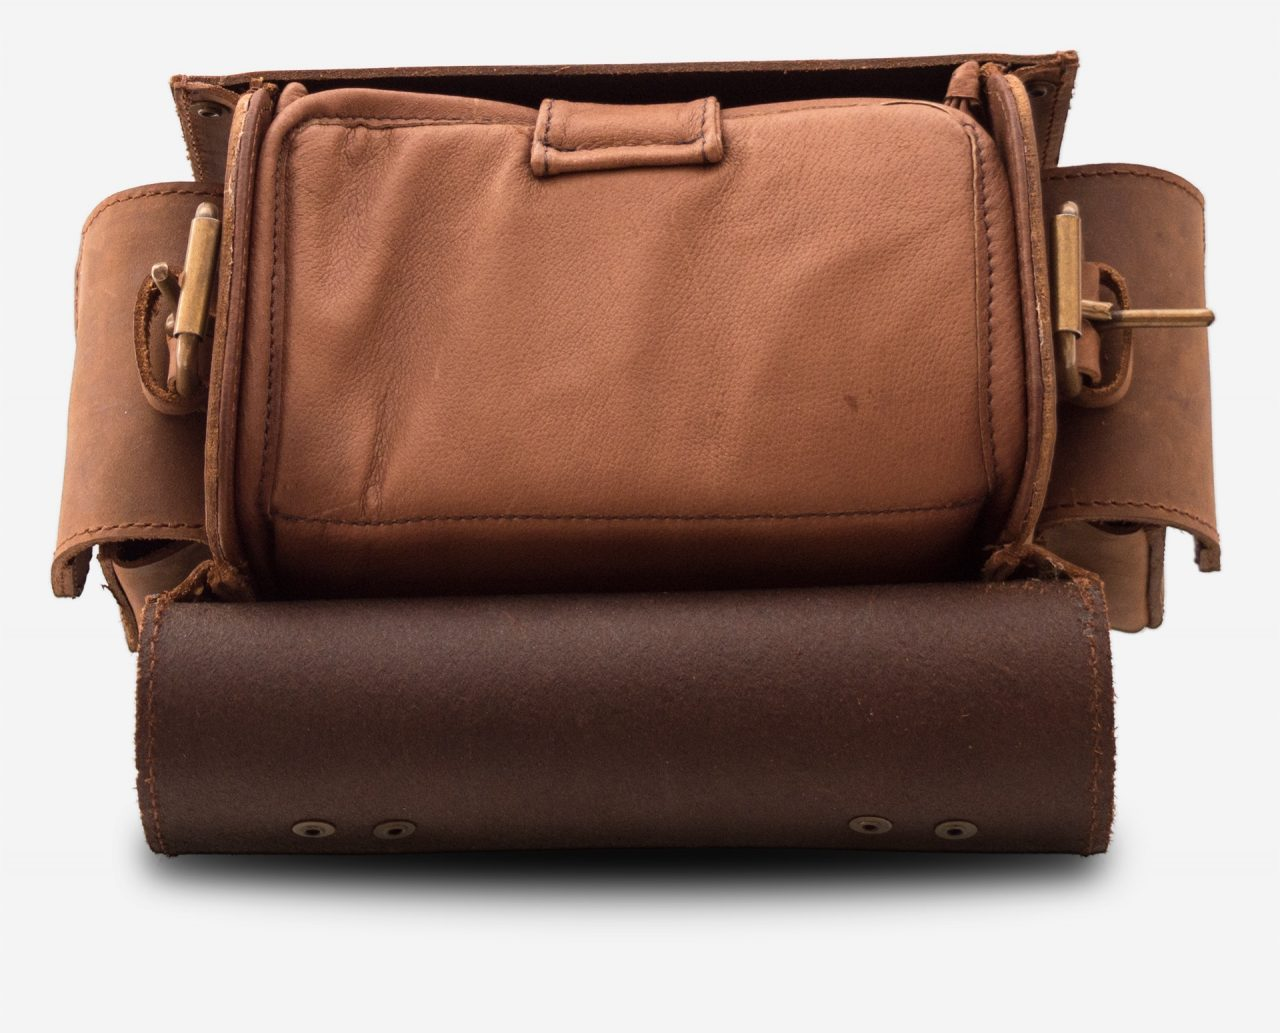 Open brown leather camera bag 733104.